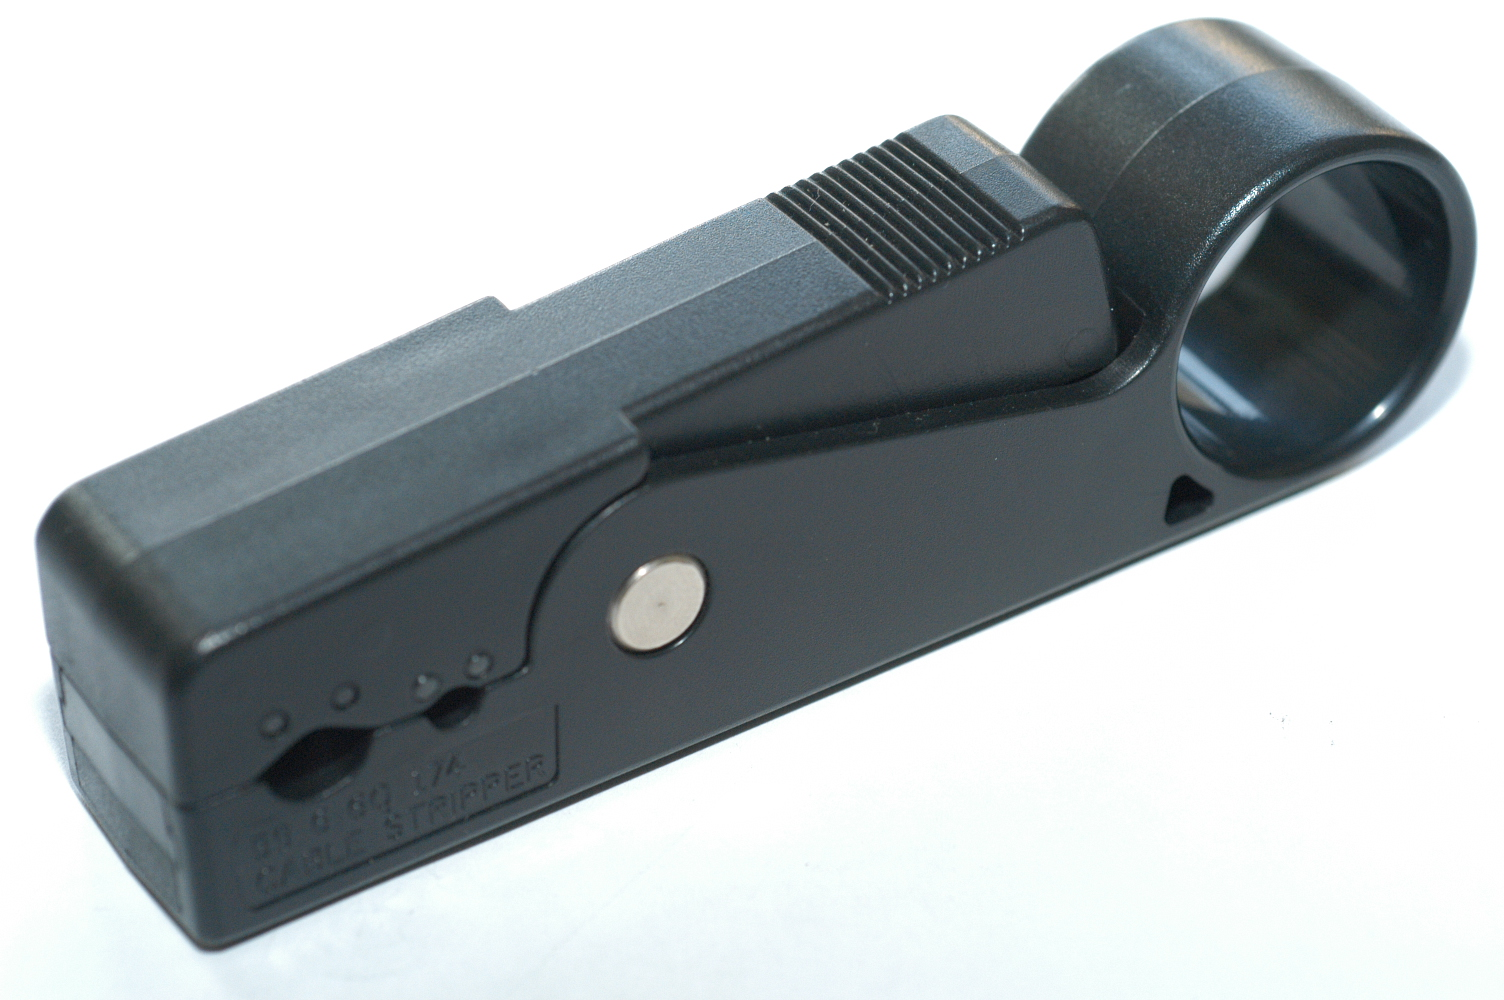 Coaxial cable stripper (Koaxialkabel Stripper)